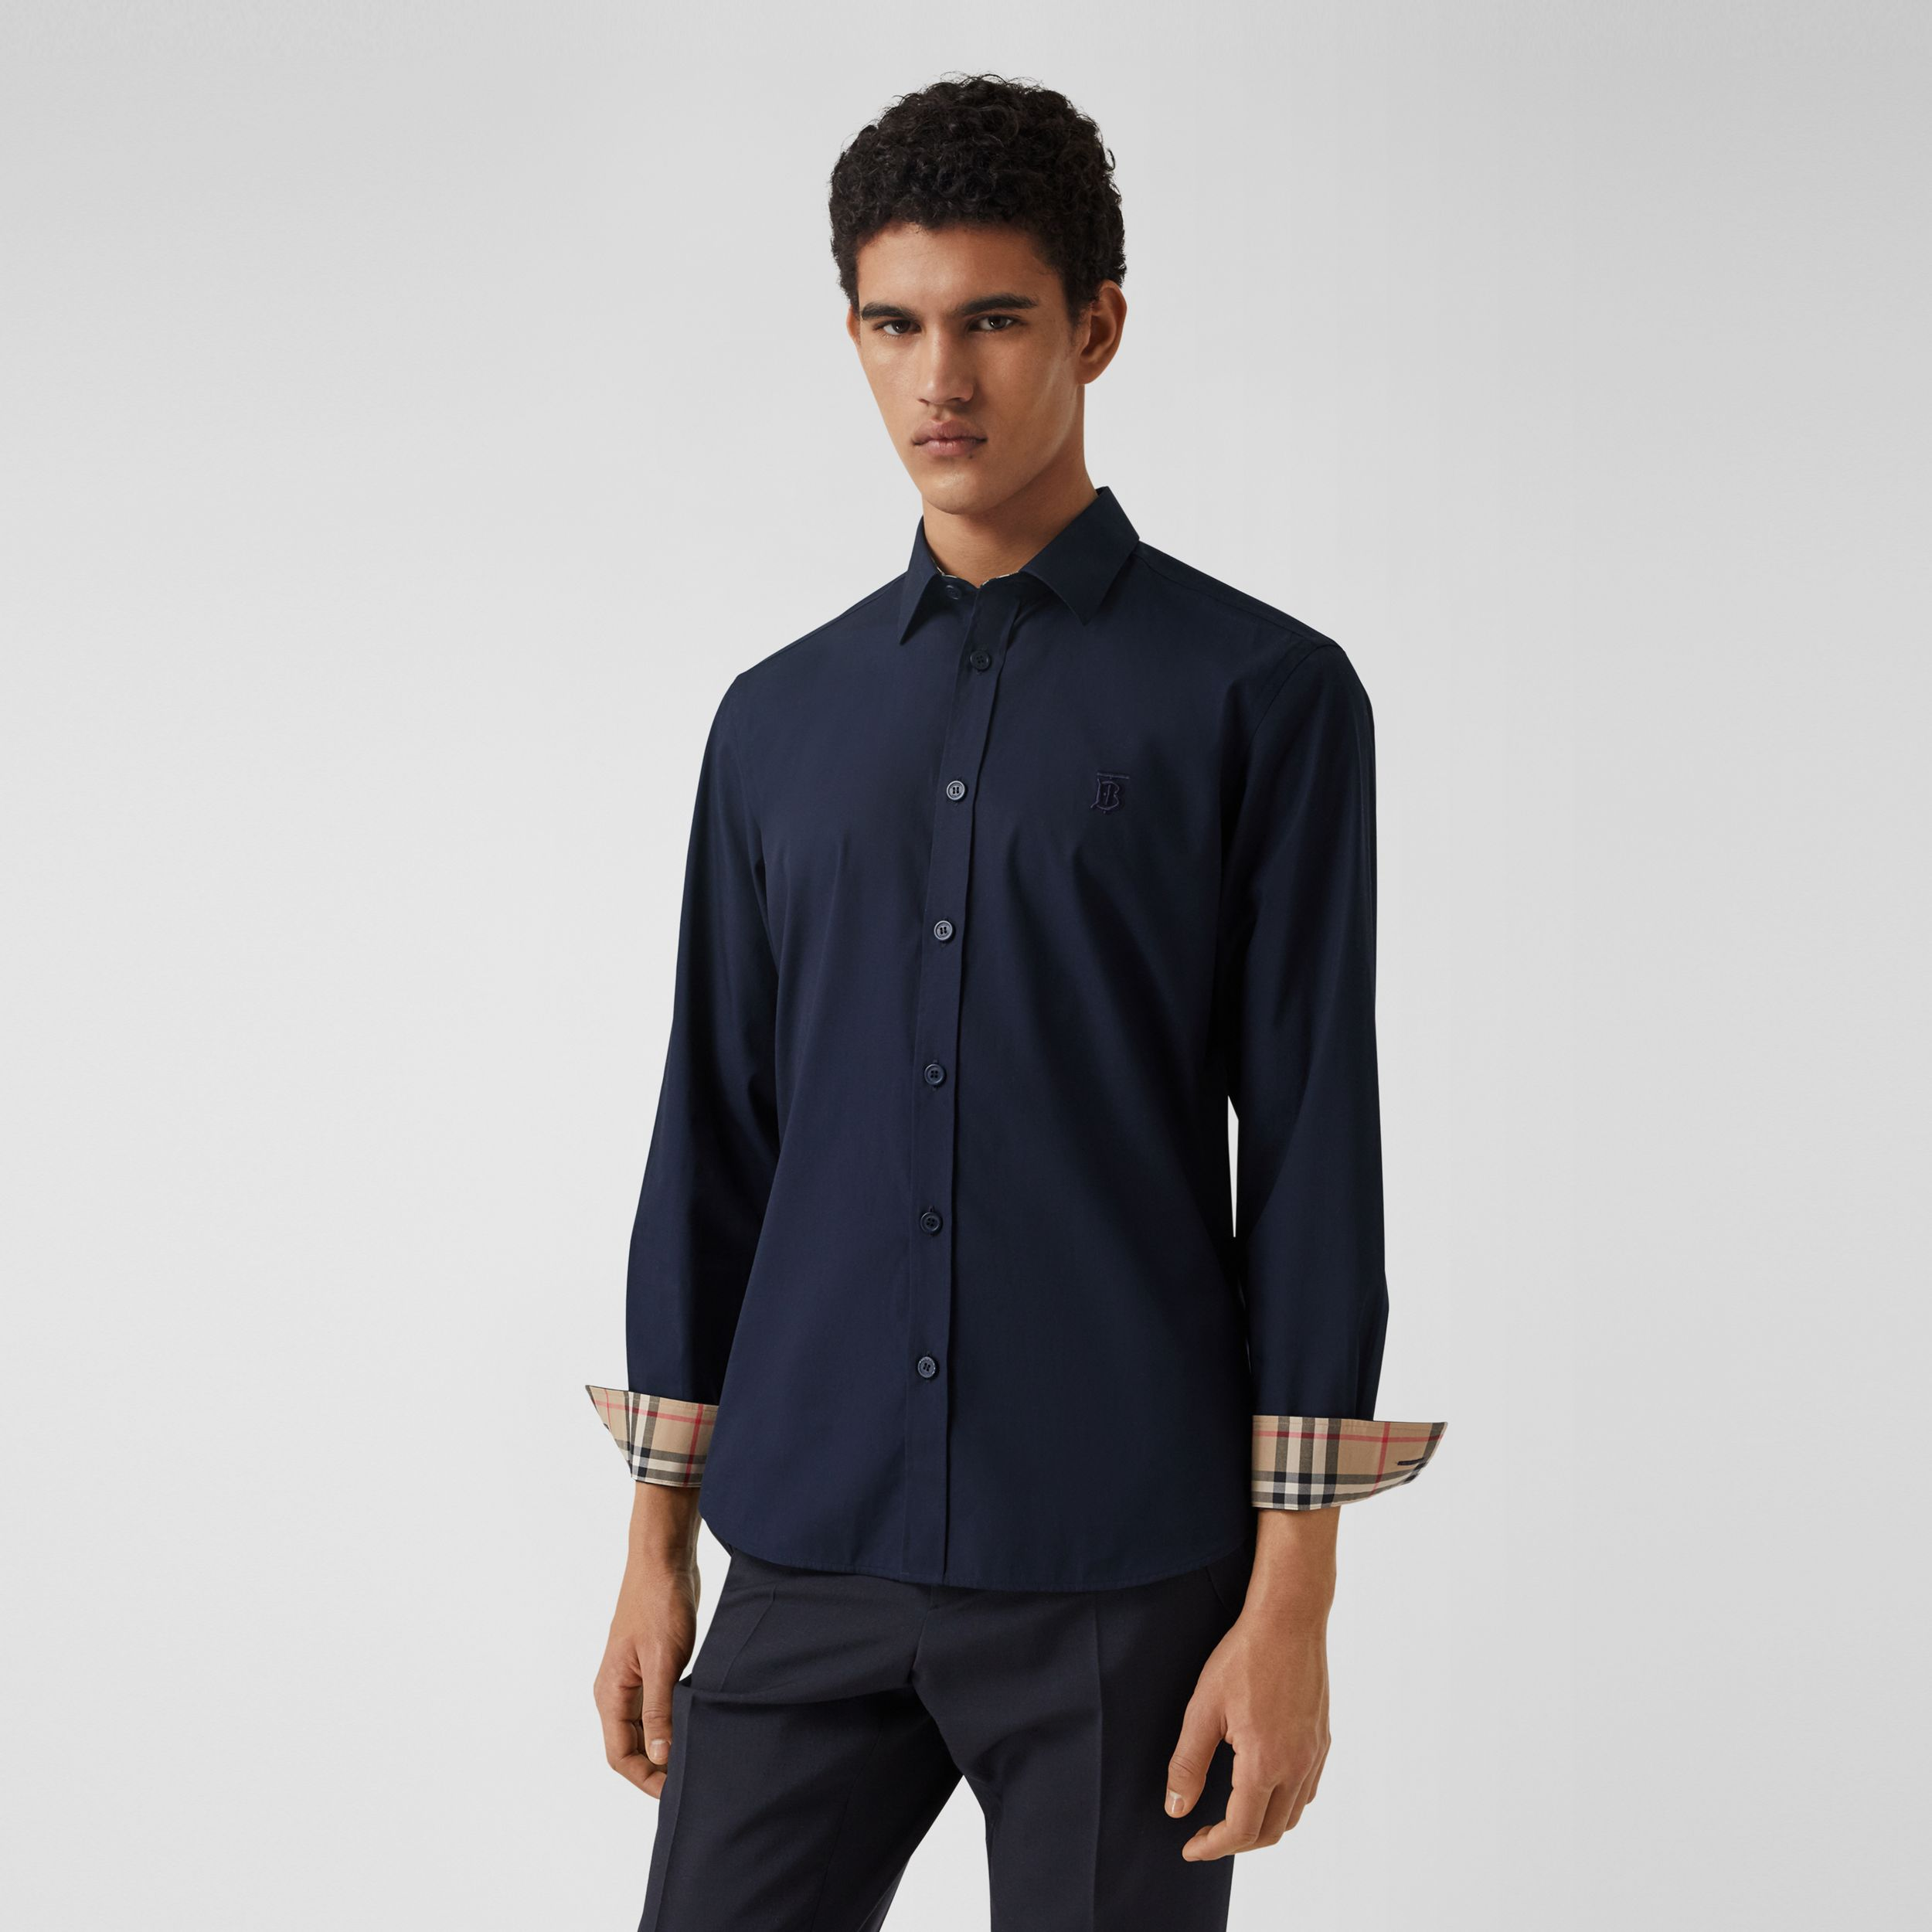 Slim Fit Monogram Motif Stretch Cotton Poplin Shirt in Navy - Men | Burberry Hong Kong S.A.R. - 1